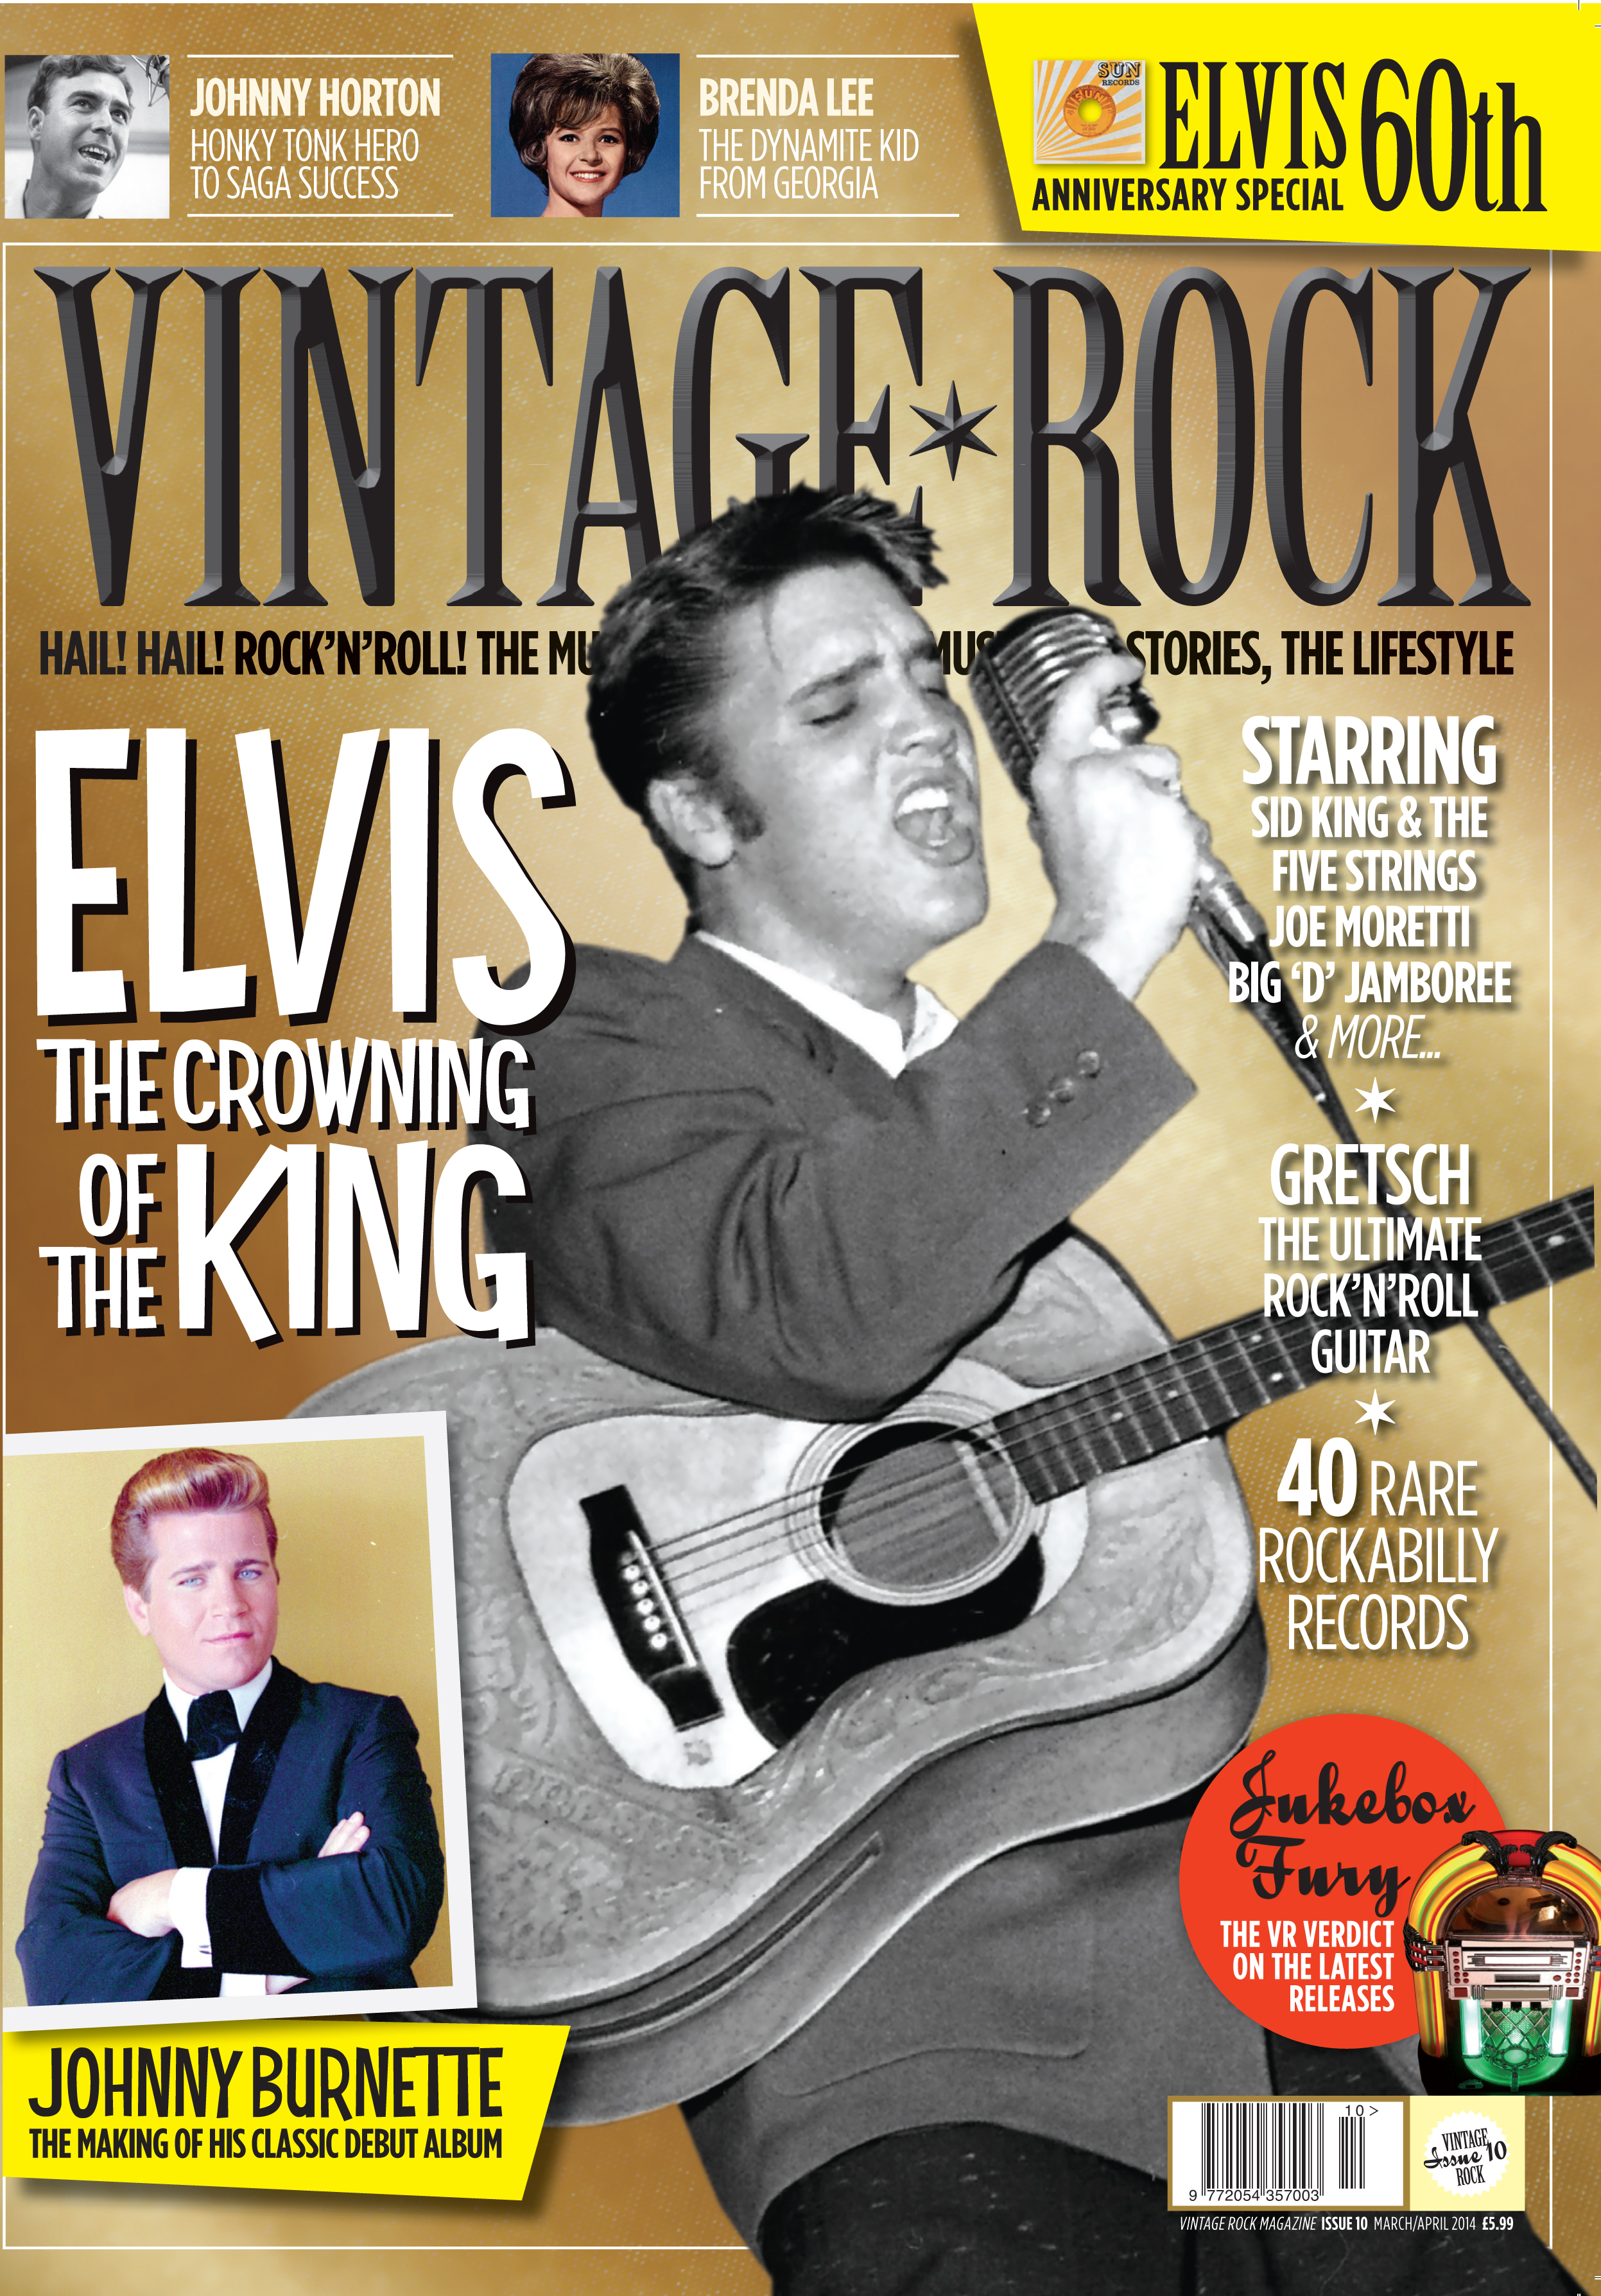 Vintage Rock Magazine Elvis Anniversary Special Out Now